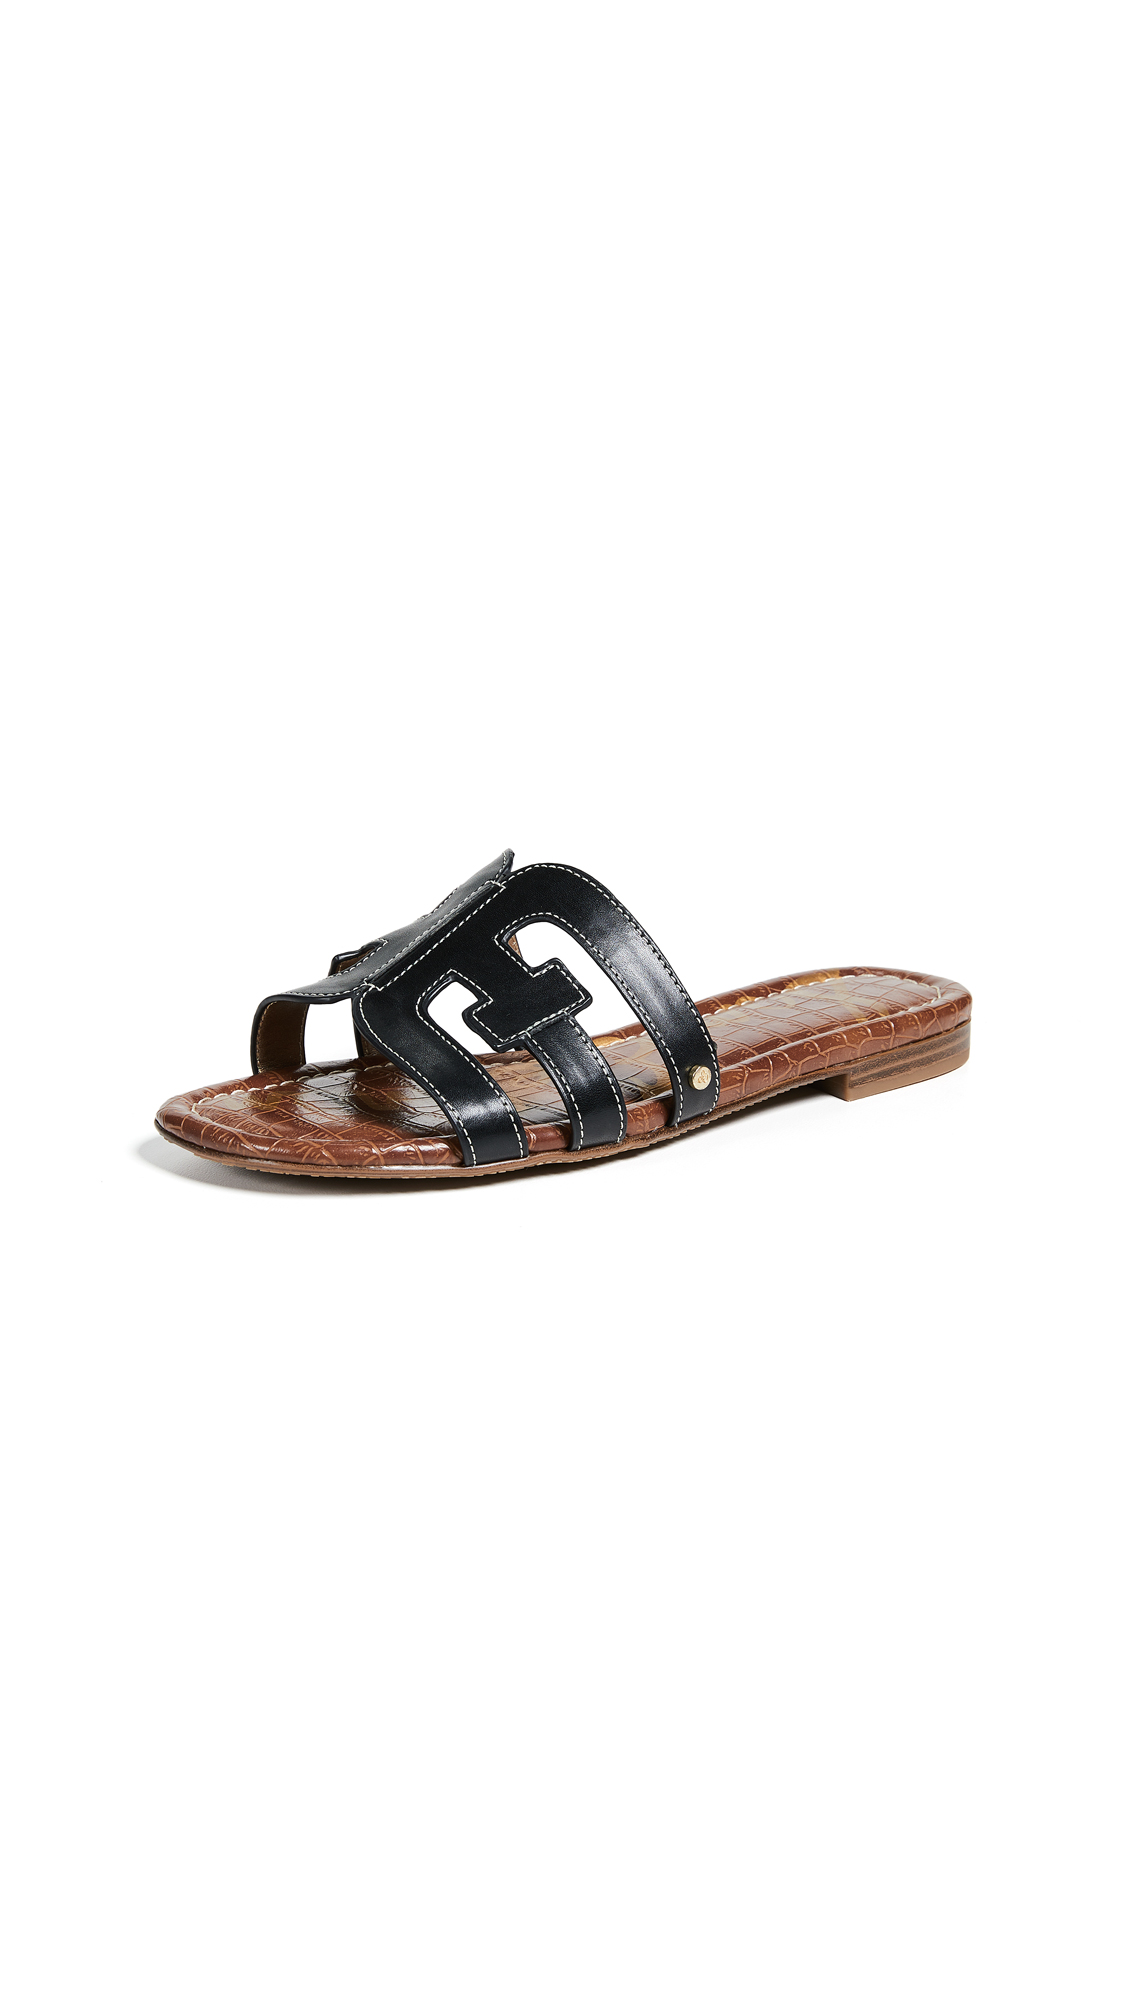 Sam Edelman Bay Slides - Black